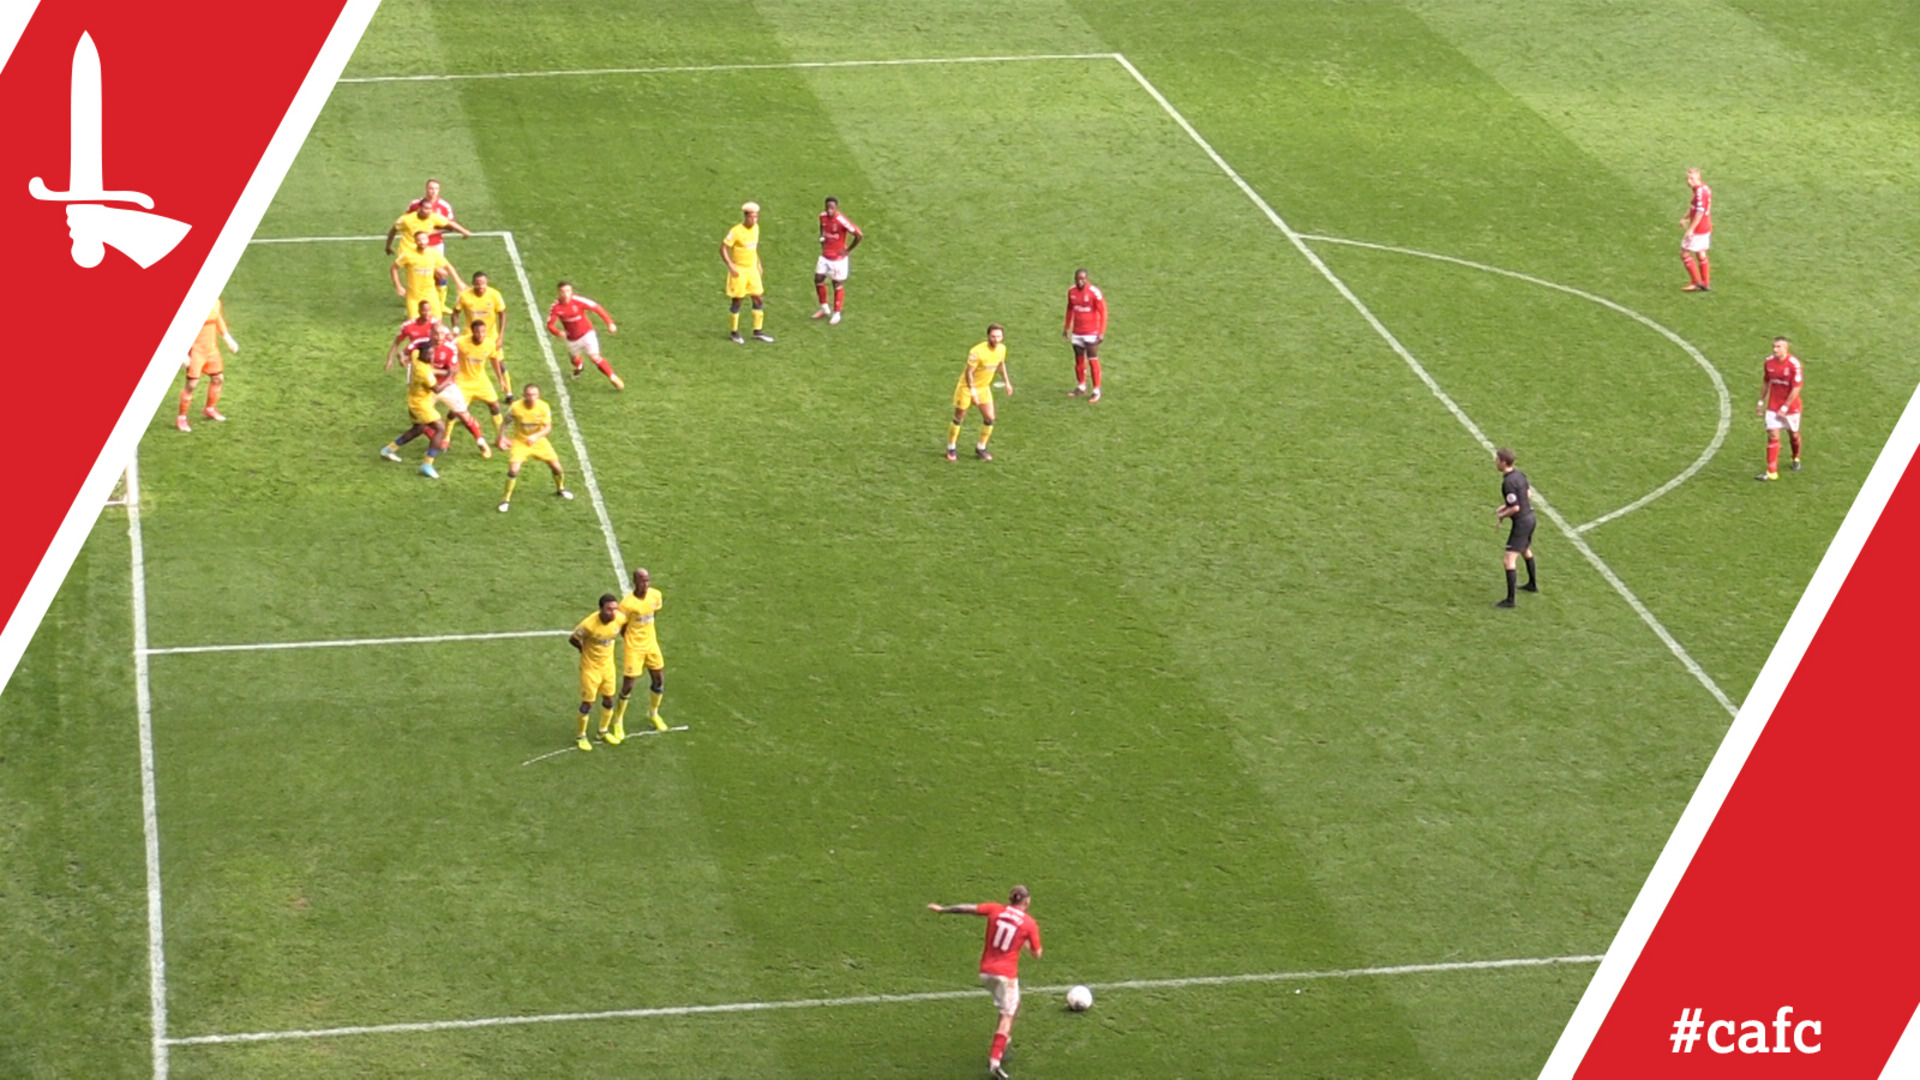 ALL ANGLES COVERED | Charlton 1 AFC Wimbledon 0